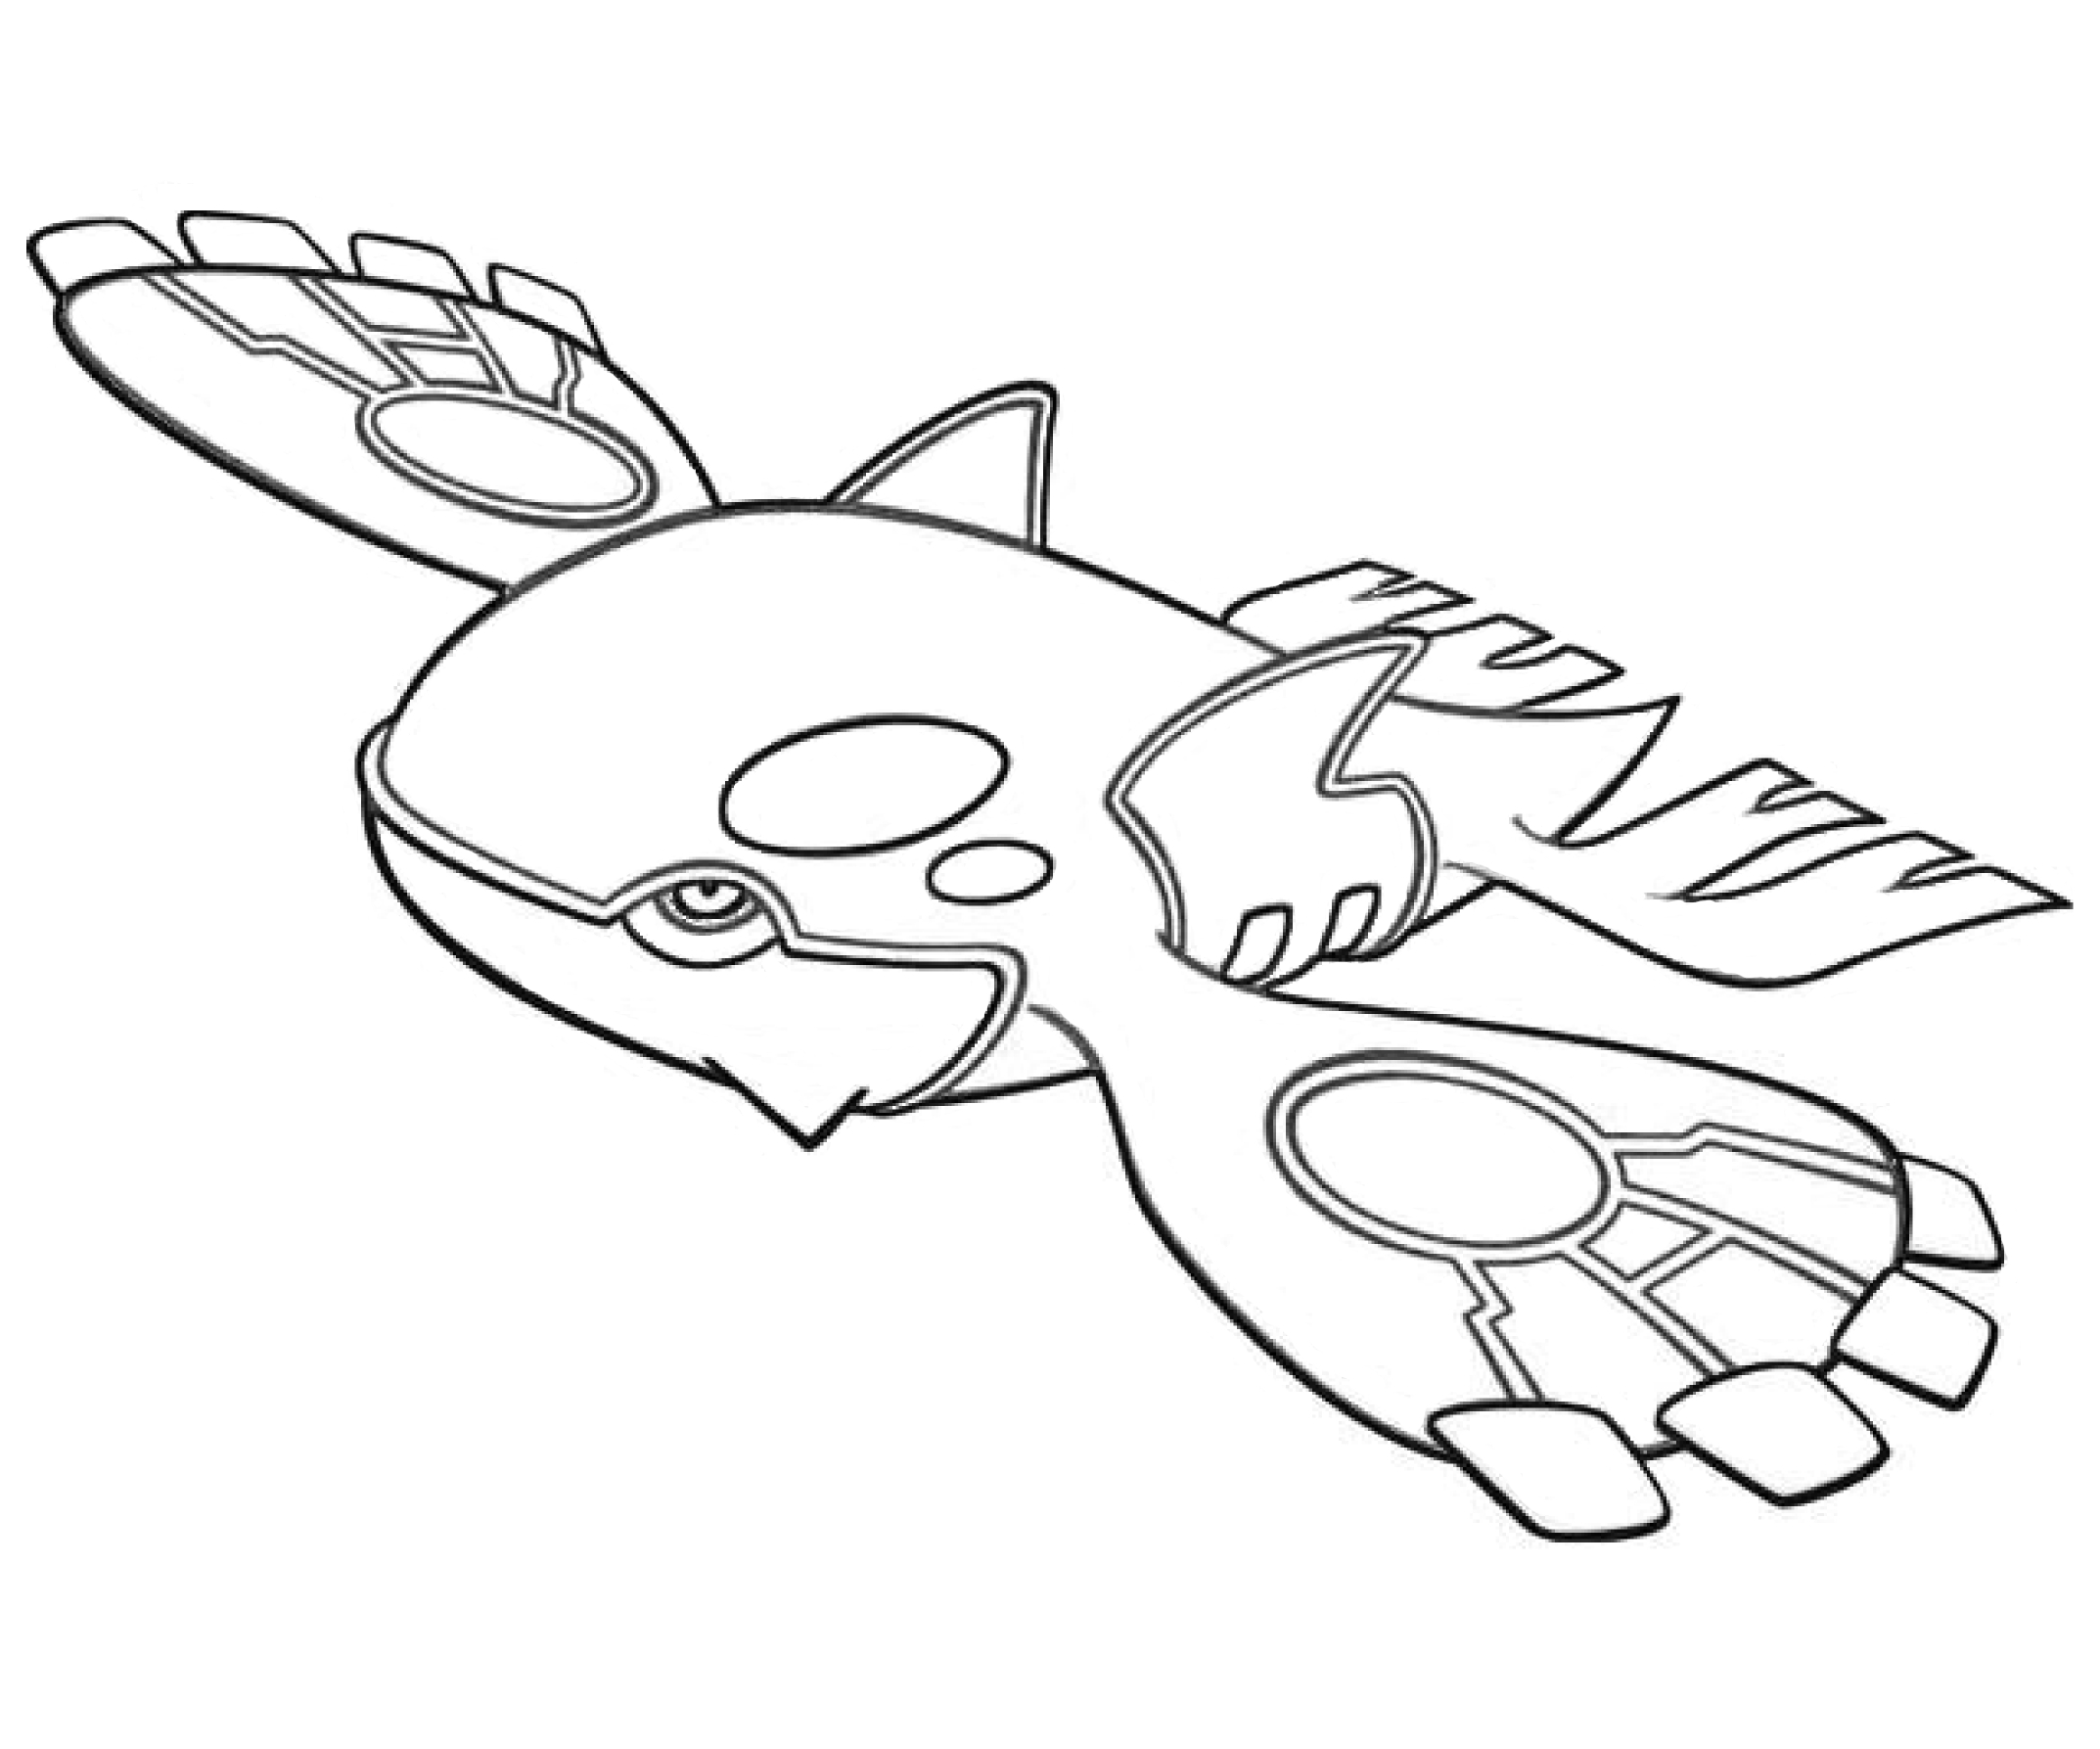 kyogre pokemon coloring pages kyogre coloring page coloring home coloring pokemon pages kyogre